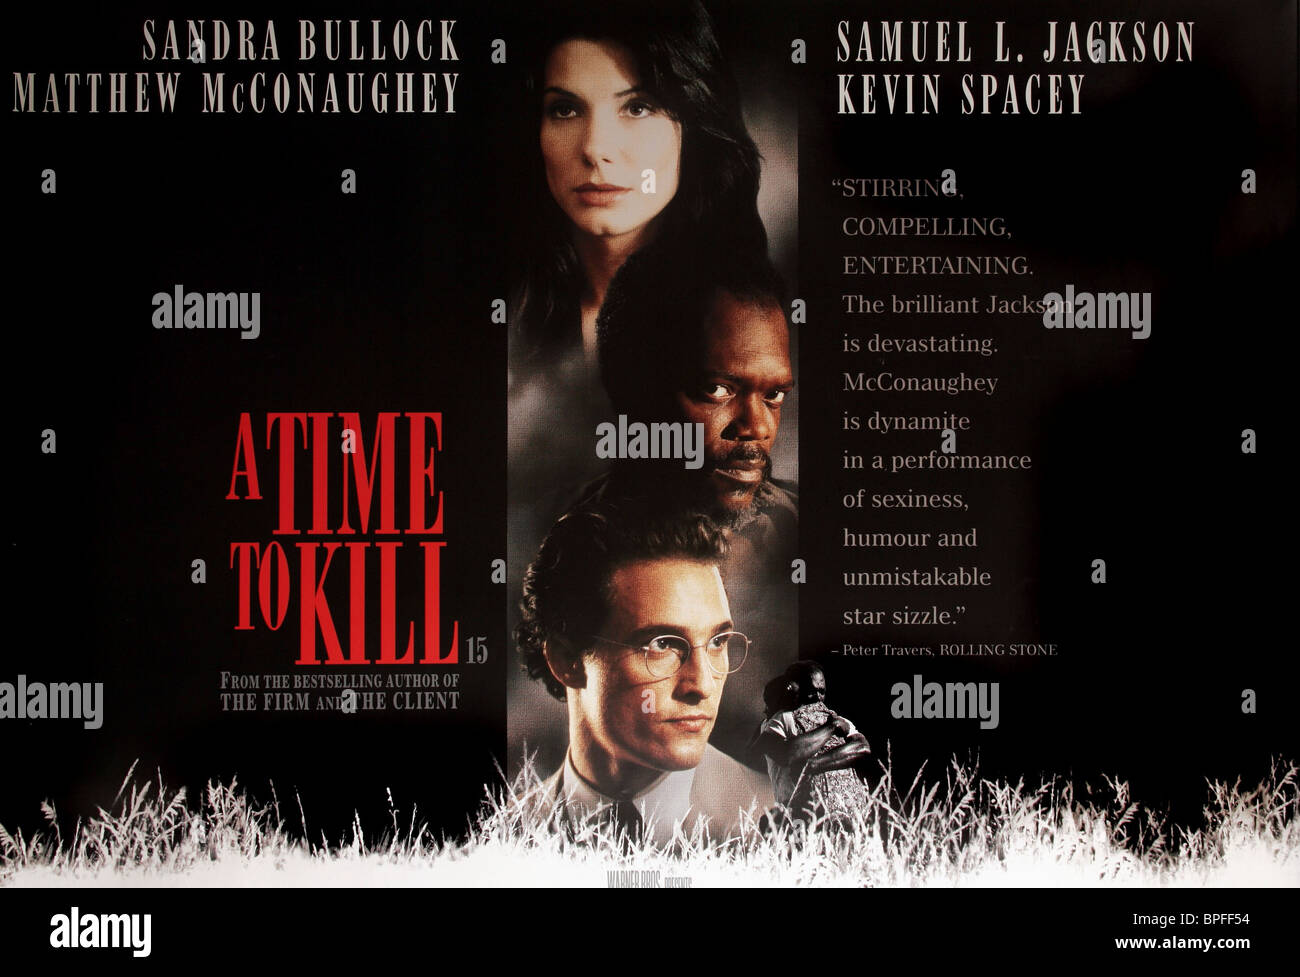 a time to kill and jackson A time to kill is a 1996 american crime drama film based on john grisham's 1989 novel a time to kill, directed by joel schumacher sandra bullock, samuel l jackson, matthew mcconaughey, and kevin spacey star, with oliver platt, ashley judd, kiefer and donald sutherland, and patrick mcgoohan appearing in supporting roles.